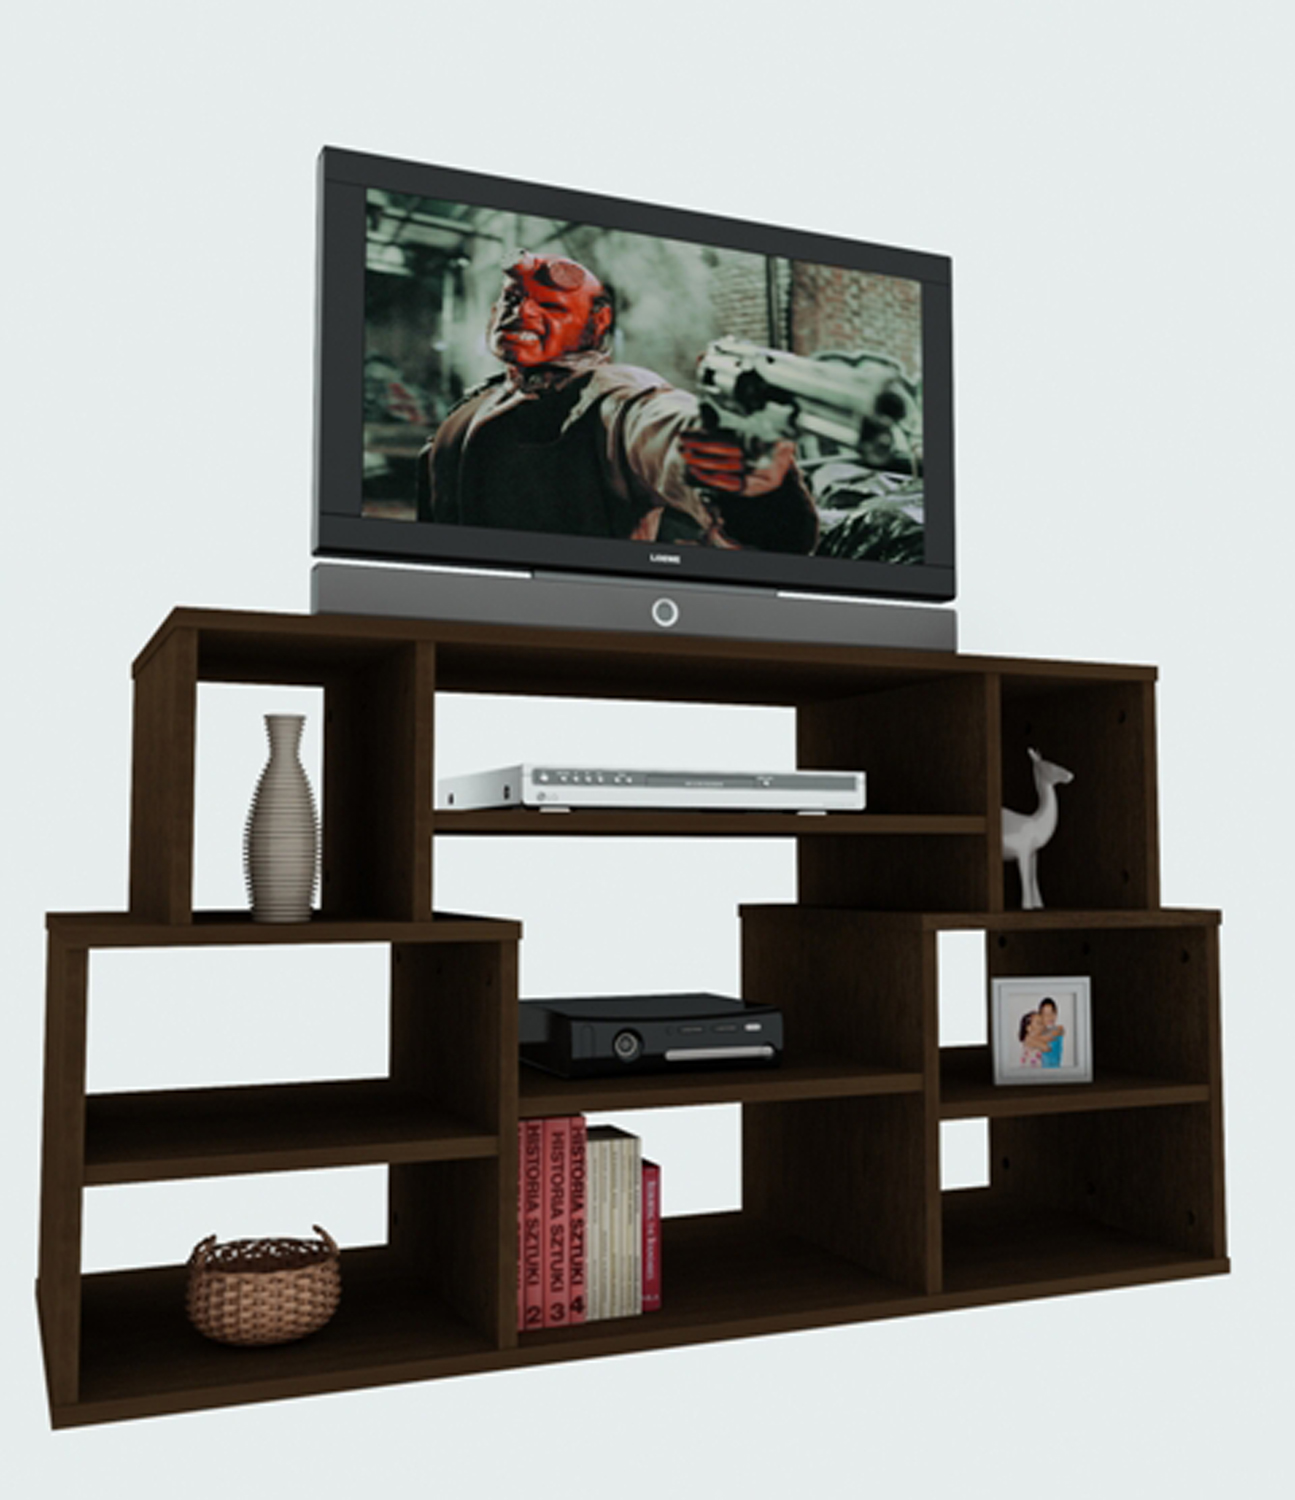 Tv 432 sistemasrta free download borrow and for Muebles para tv modernos